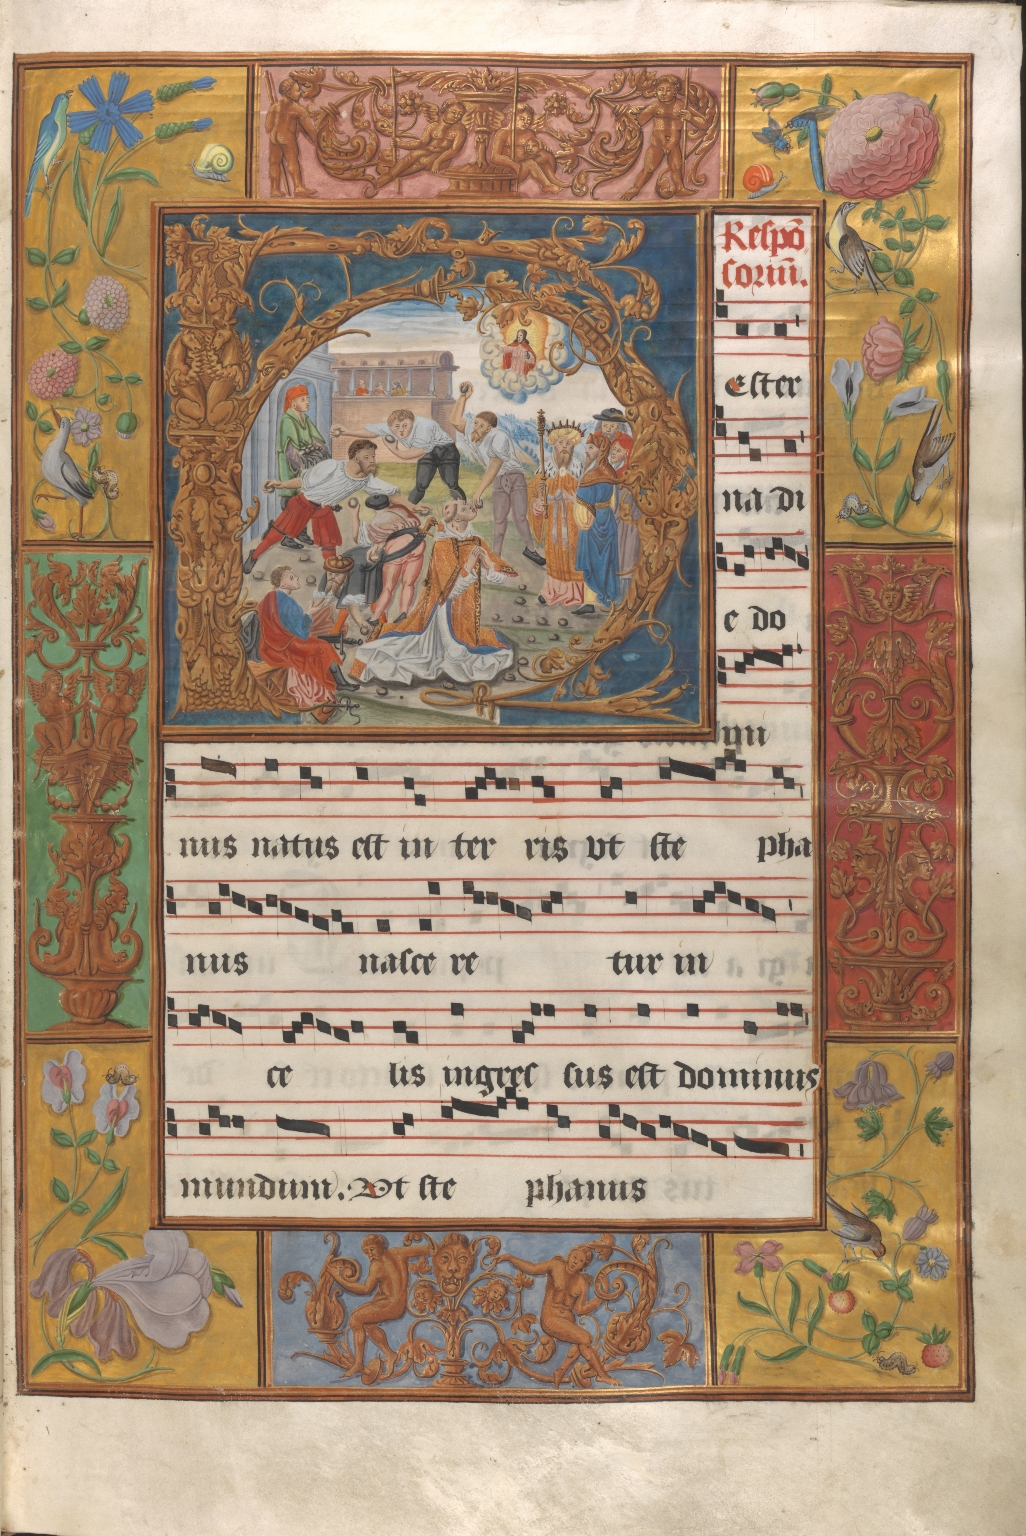 MS 017, vol. 2, fol. 3